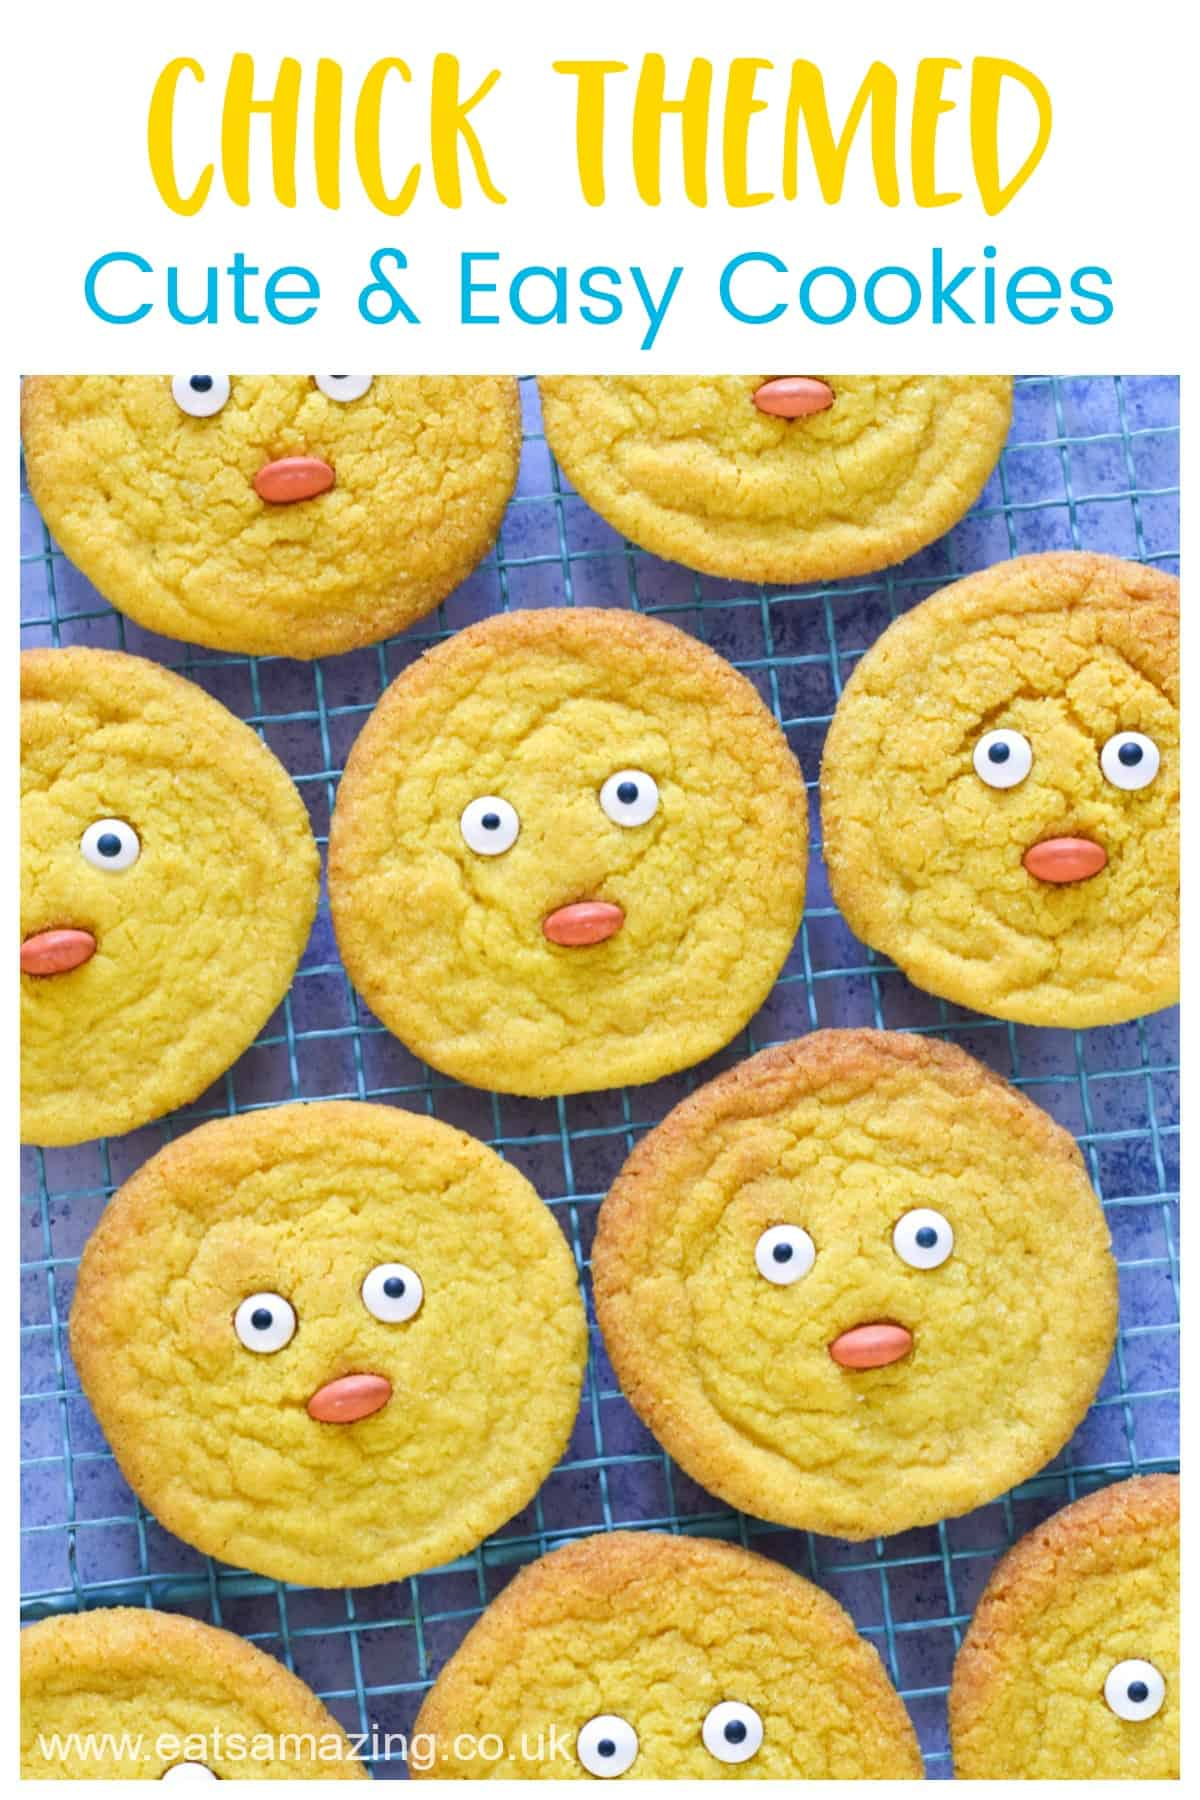 Cute and easy chick themed cookie recipe - fun spring baking project for kids